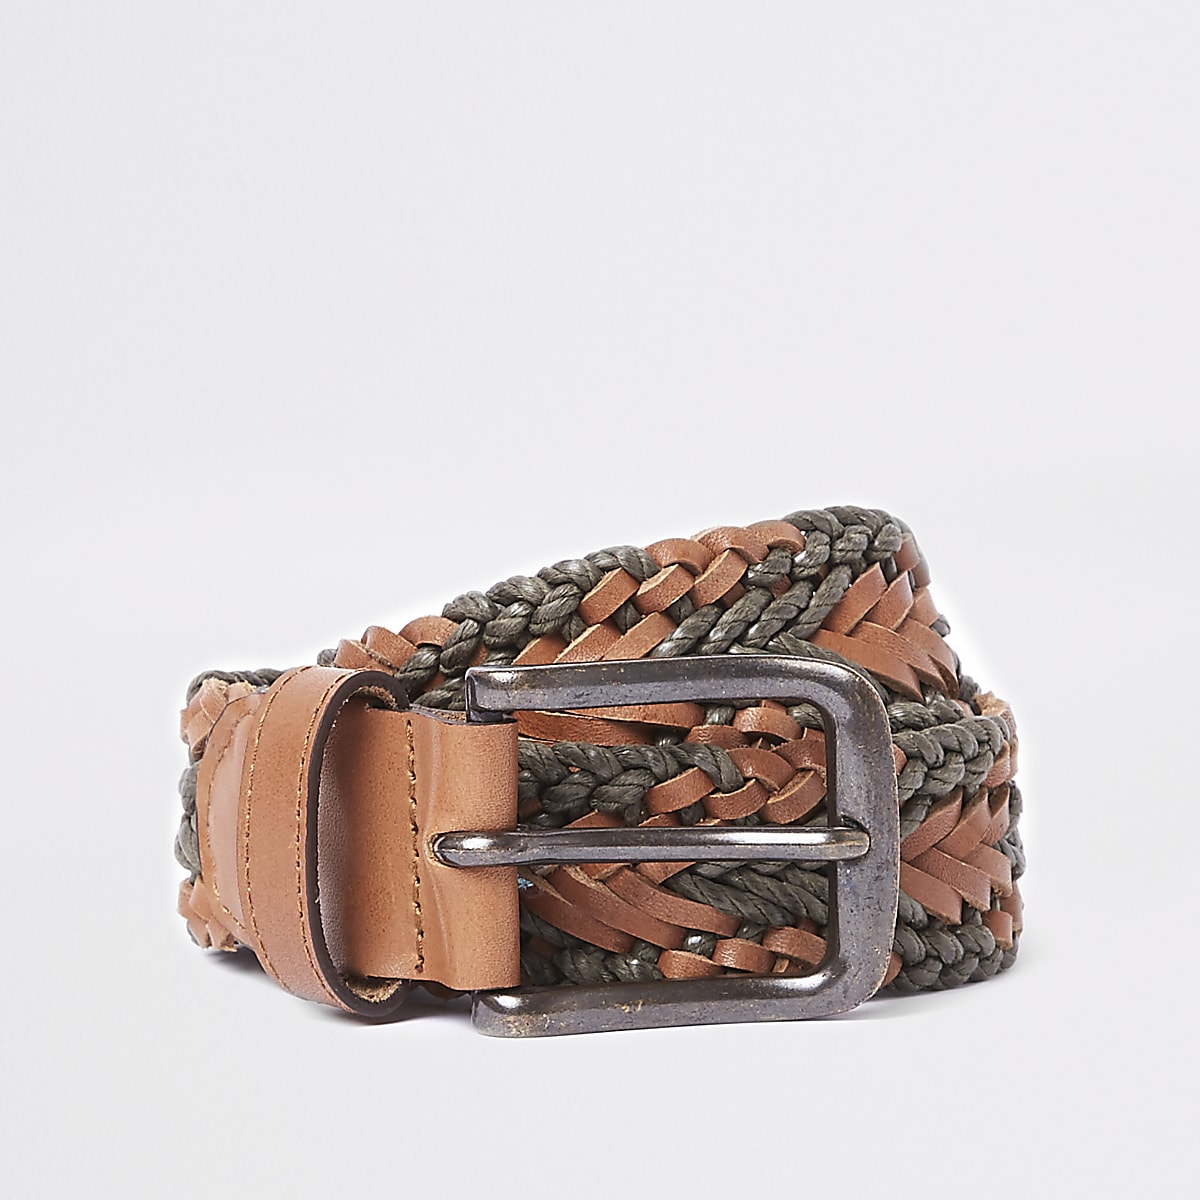 Brown and khaki woven leather belt